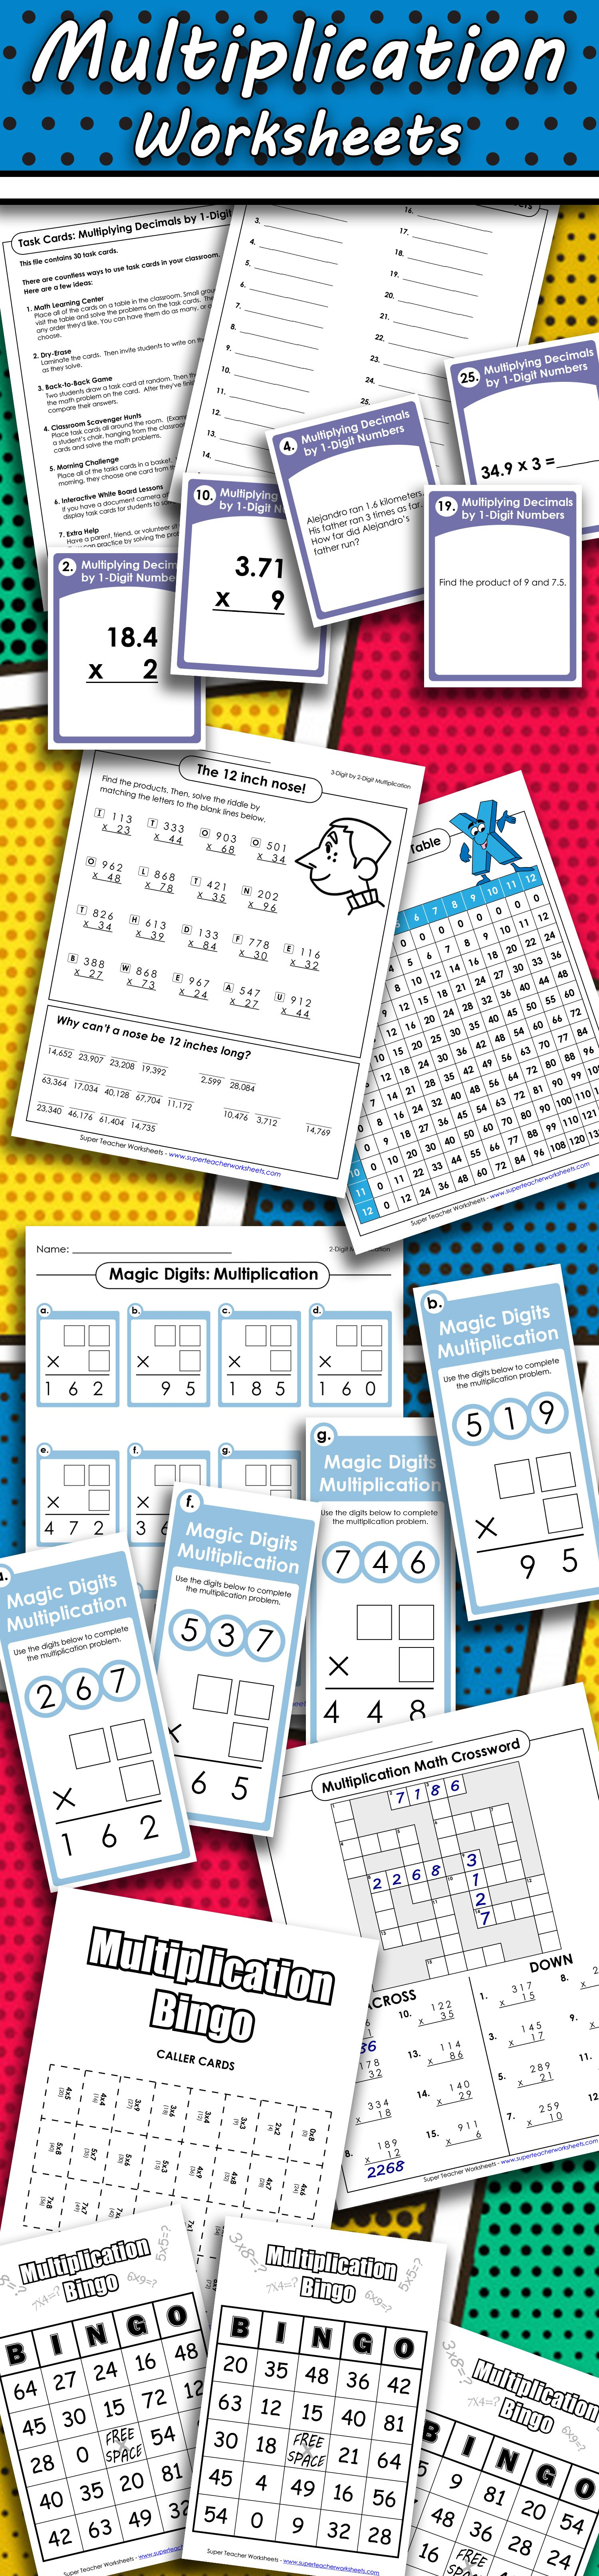 If you're looking for a plethora of multiplication